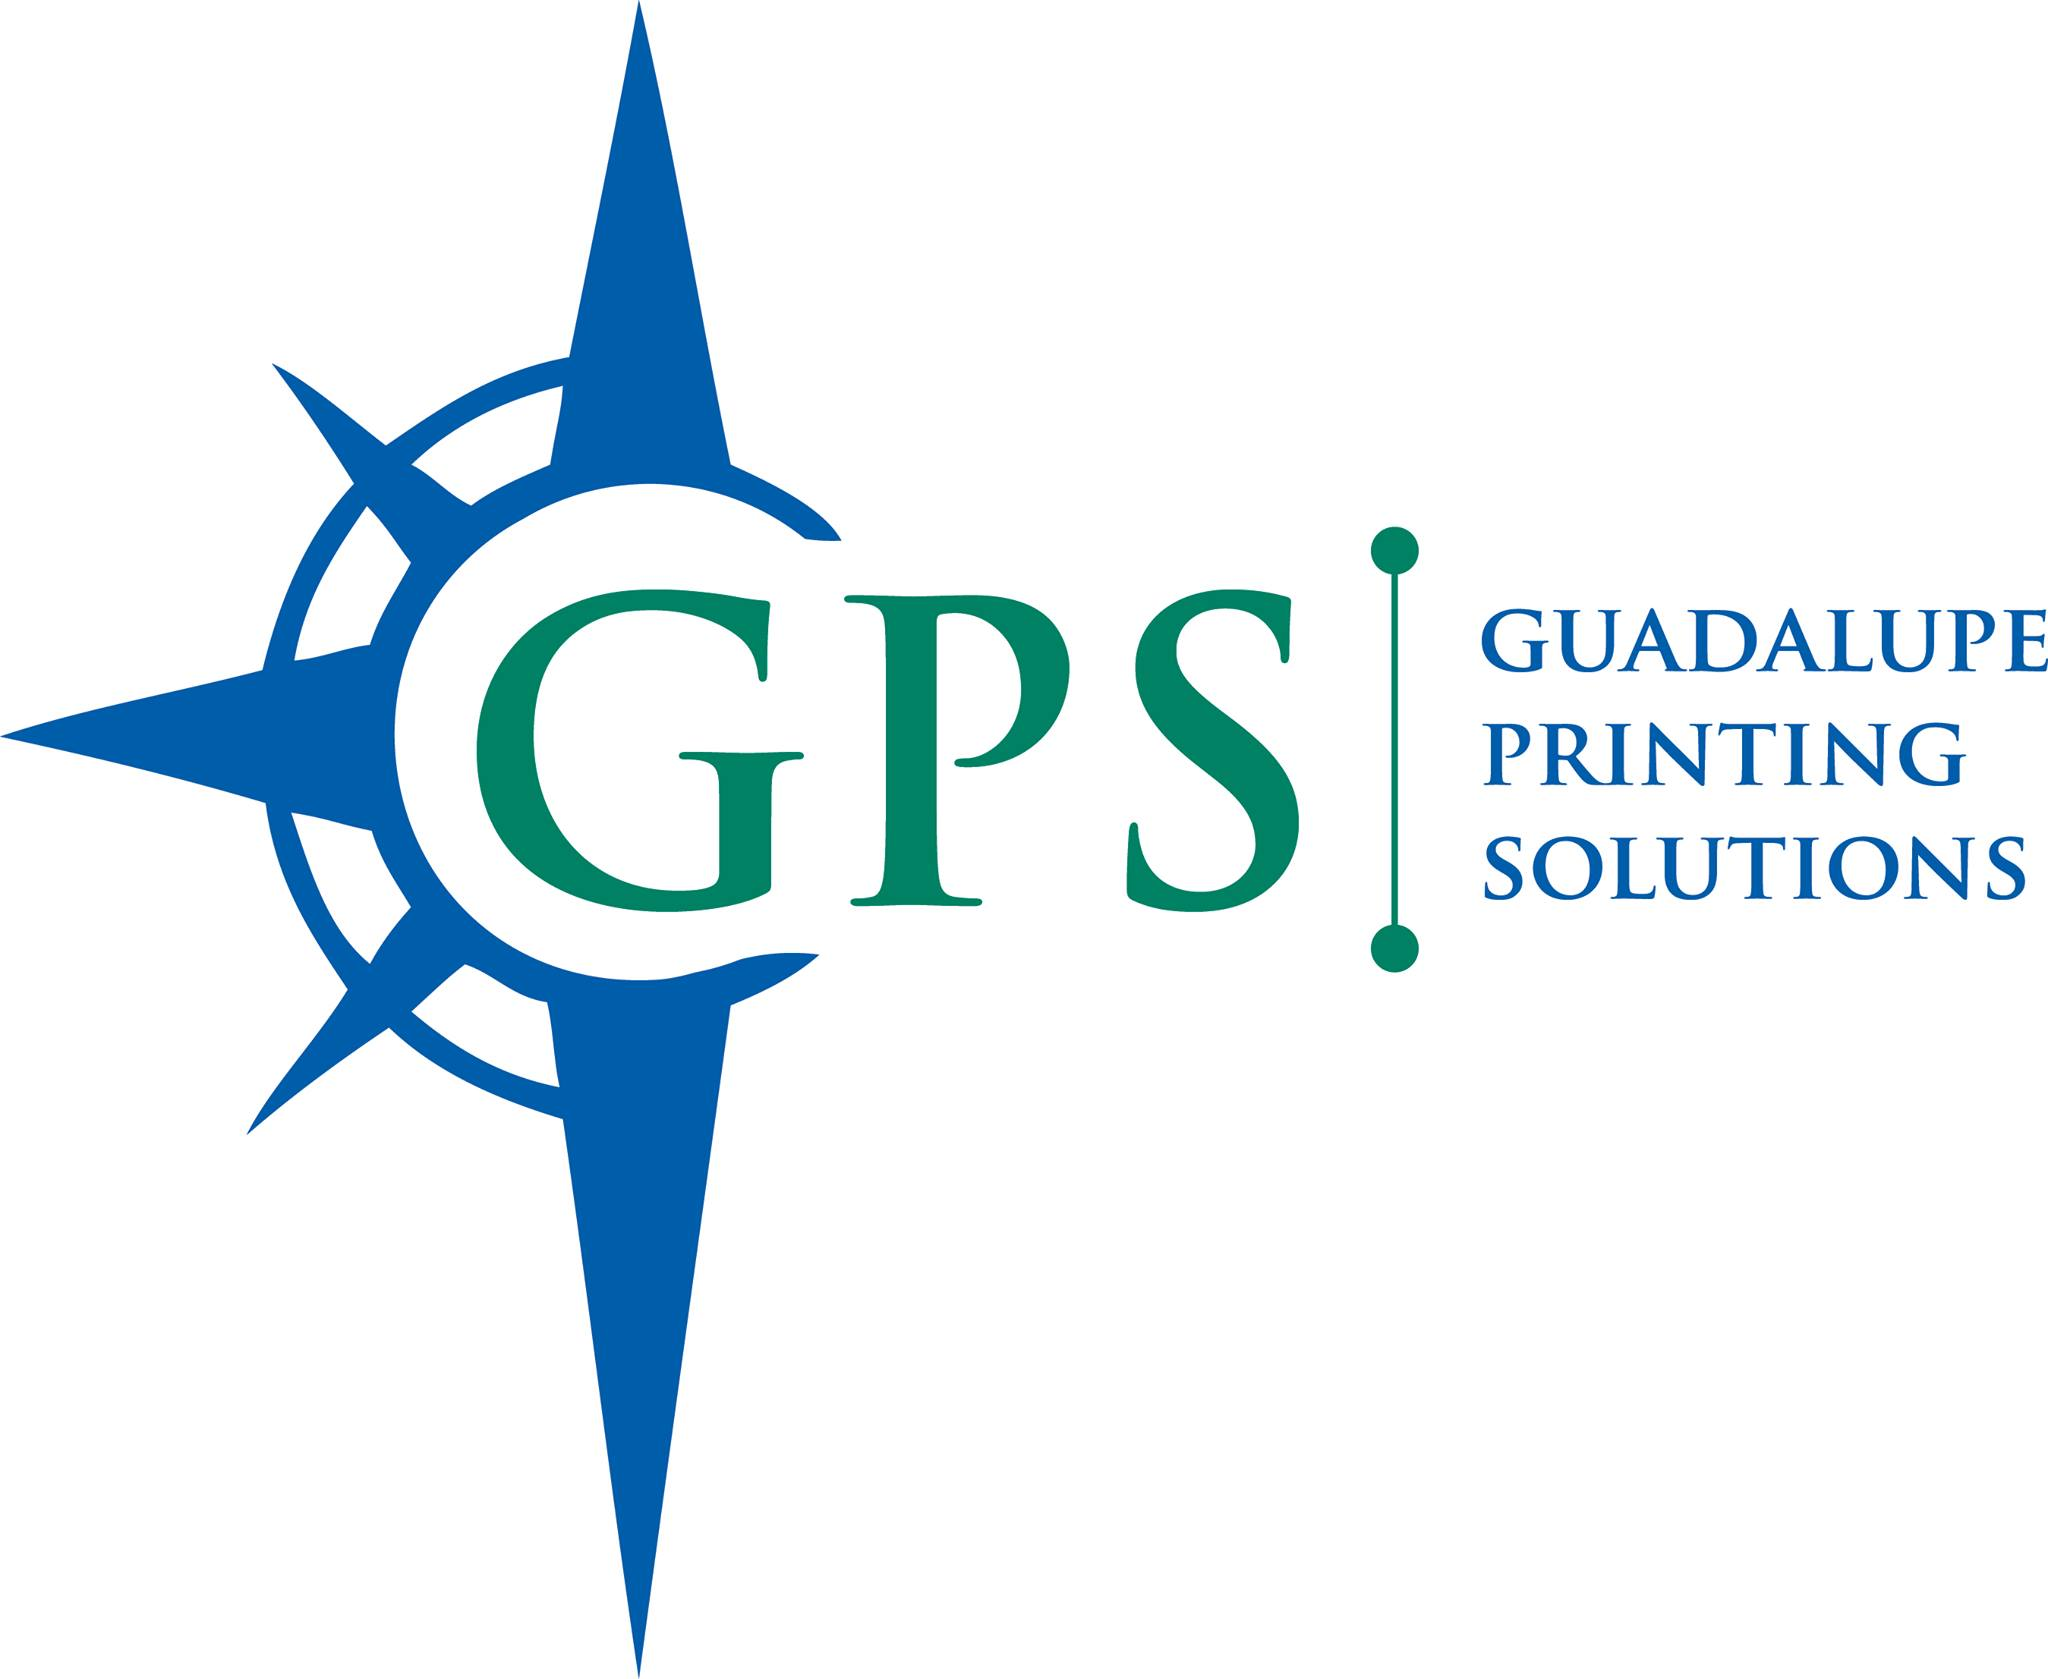 Guadalupe Printing & Solutions Logo